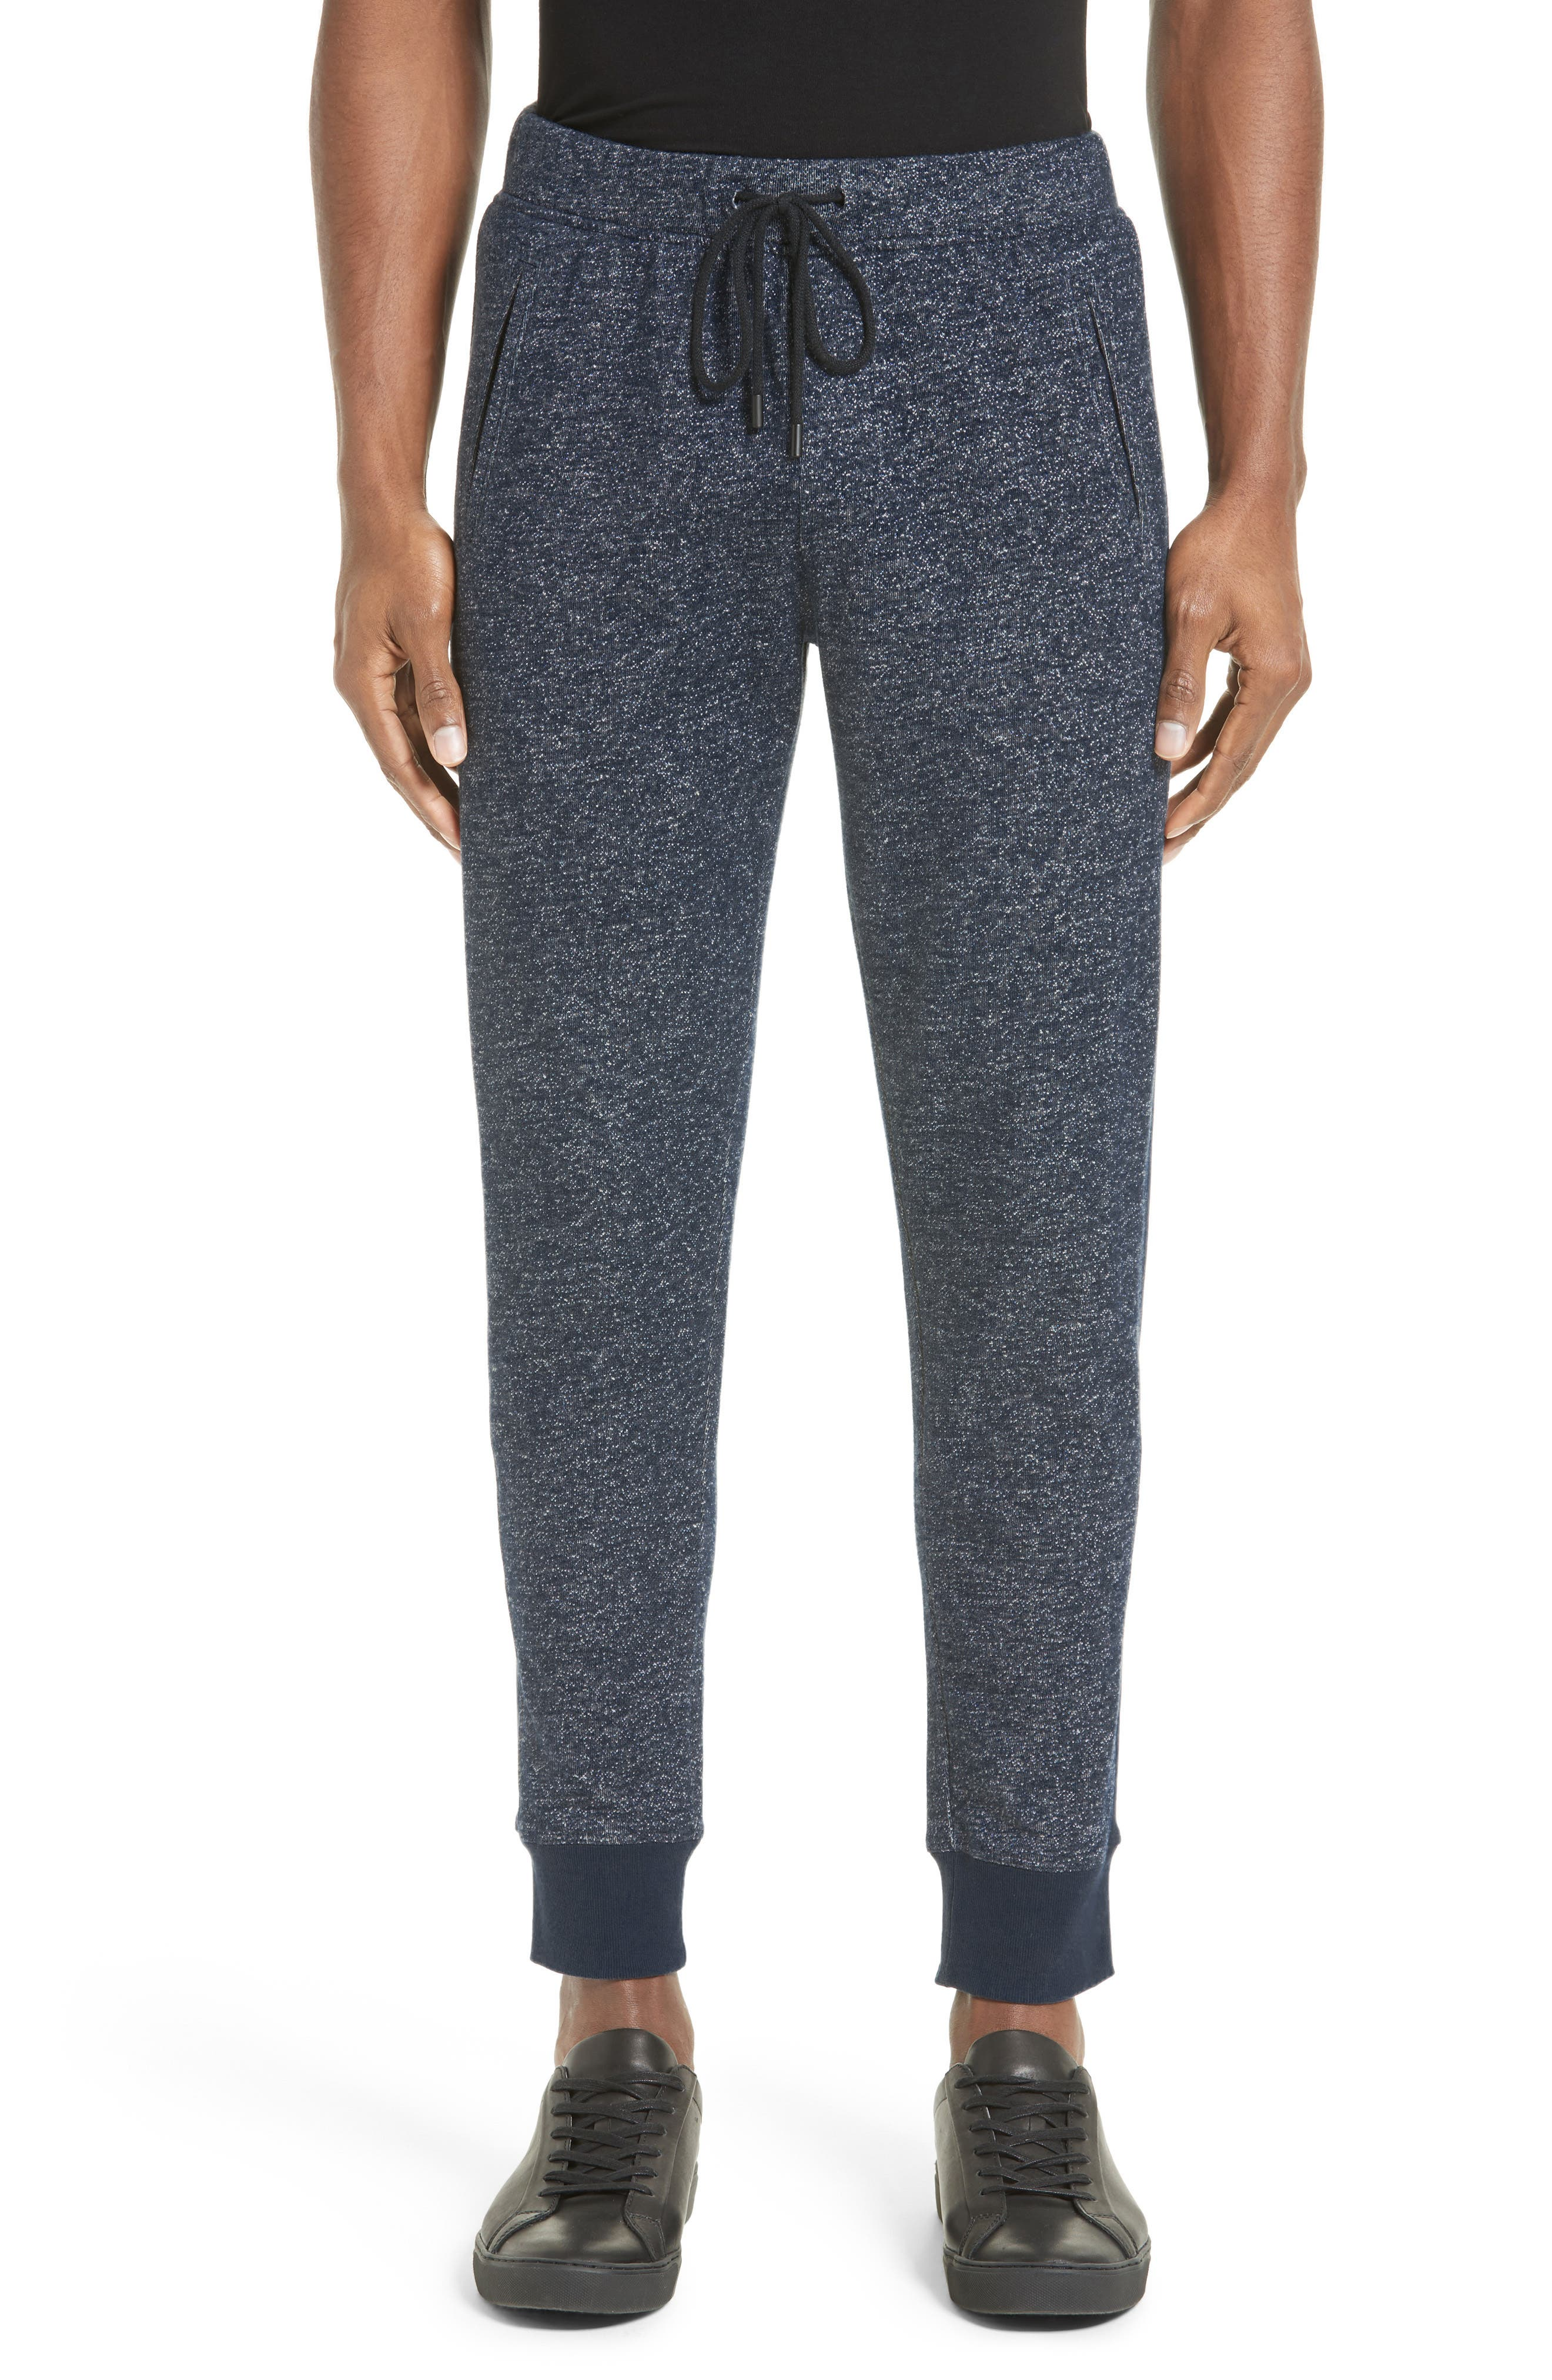 French Terry Jogger Pants,                         Main,                         color, Navy/ Ivory Blast